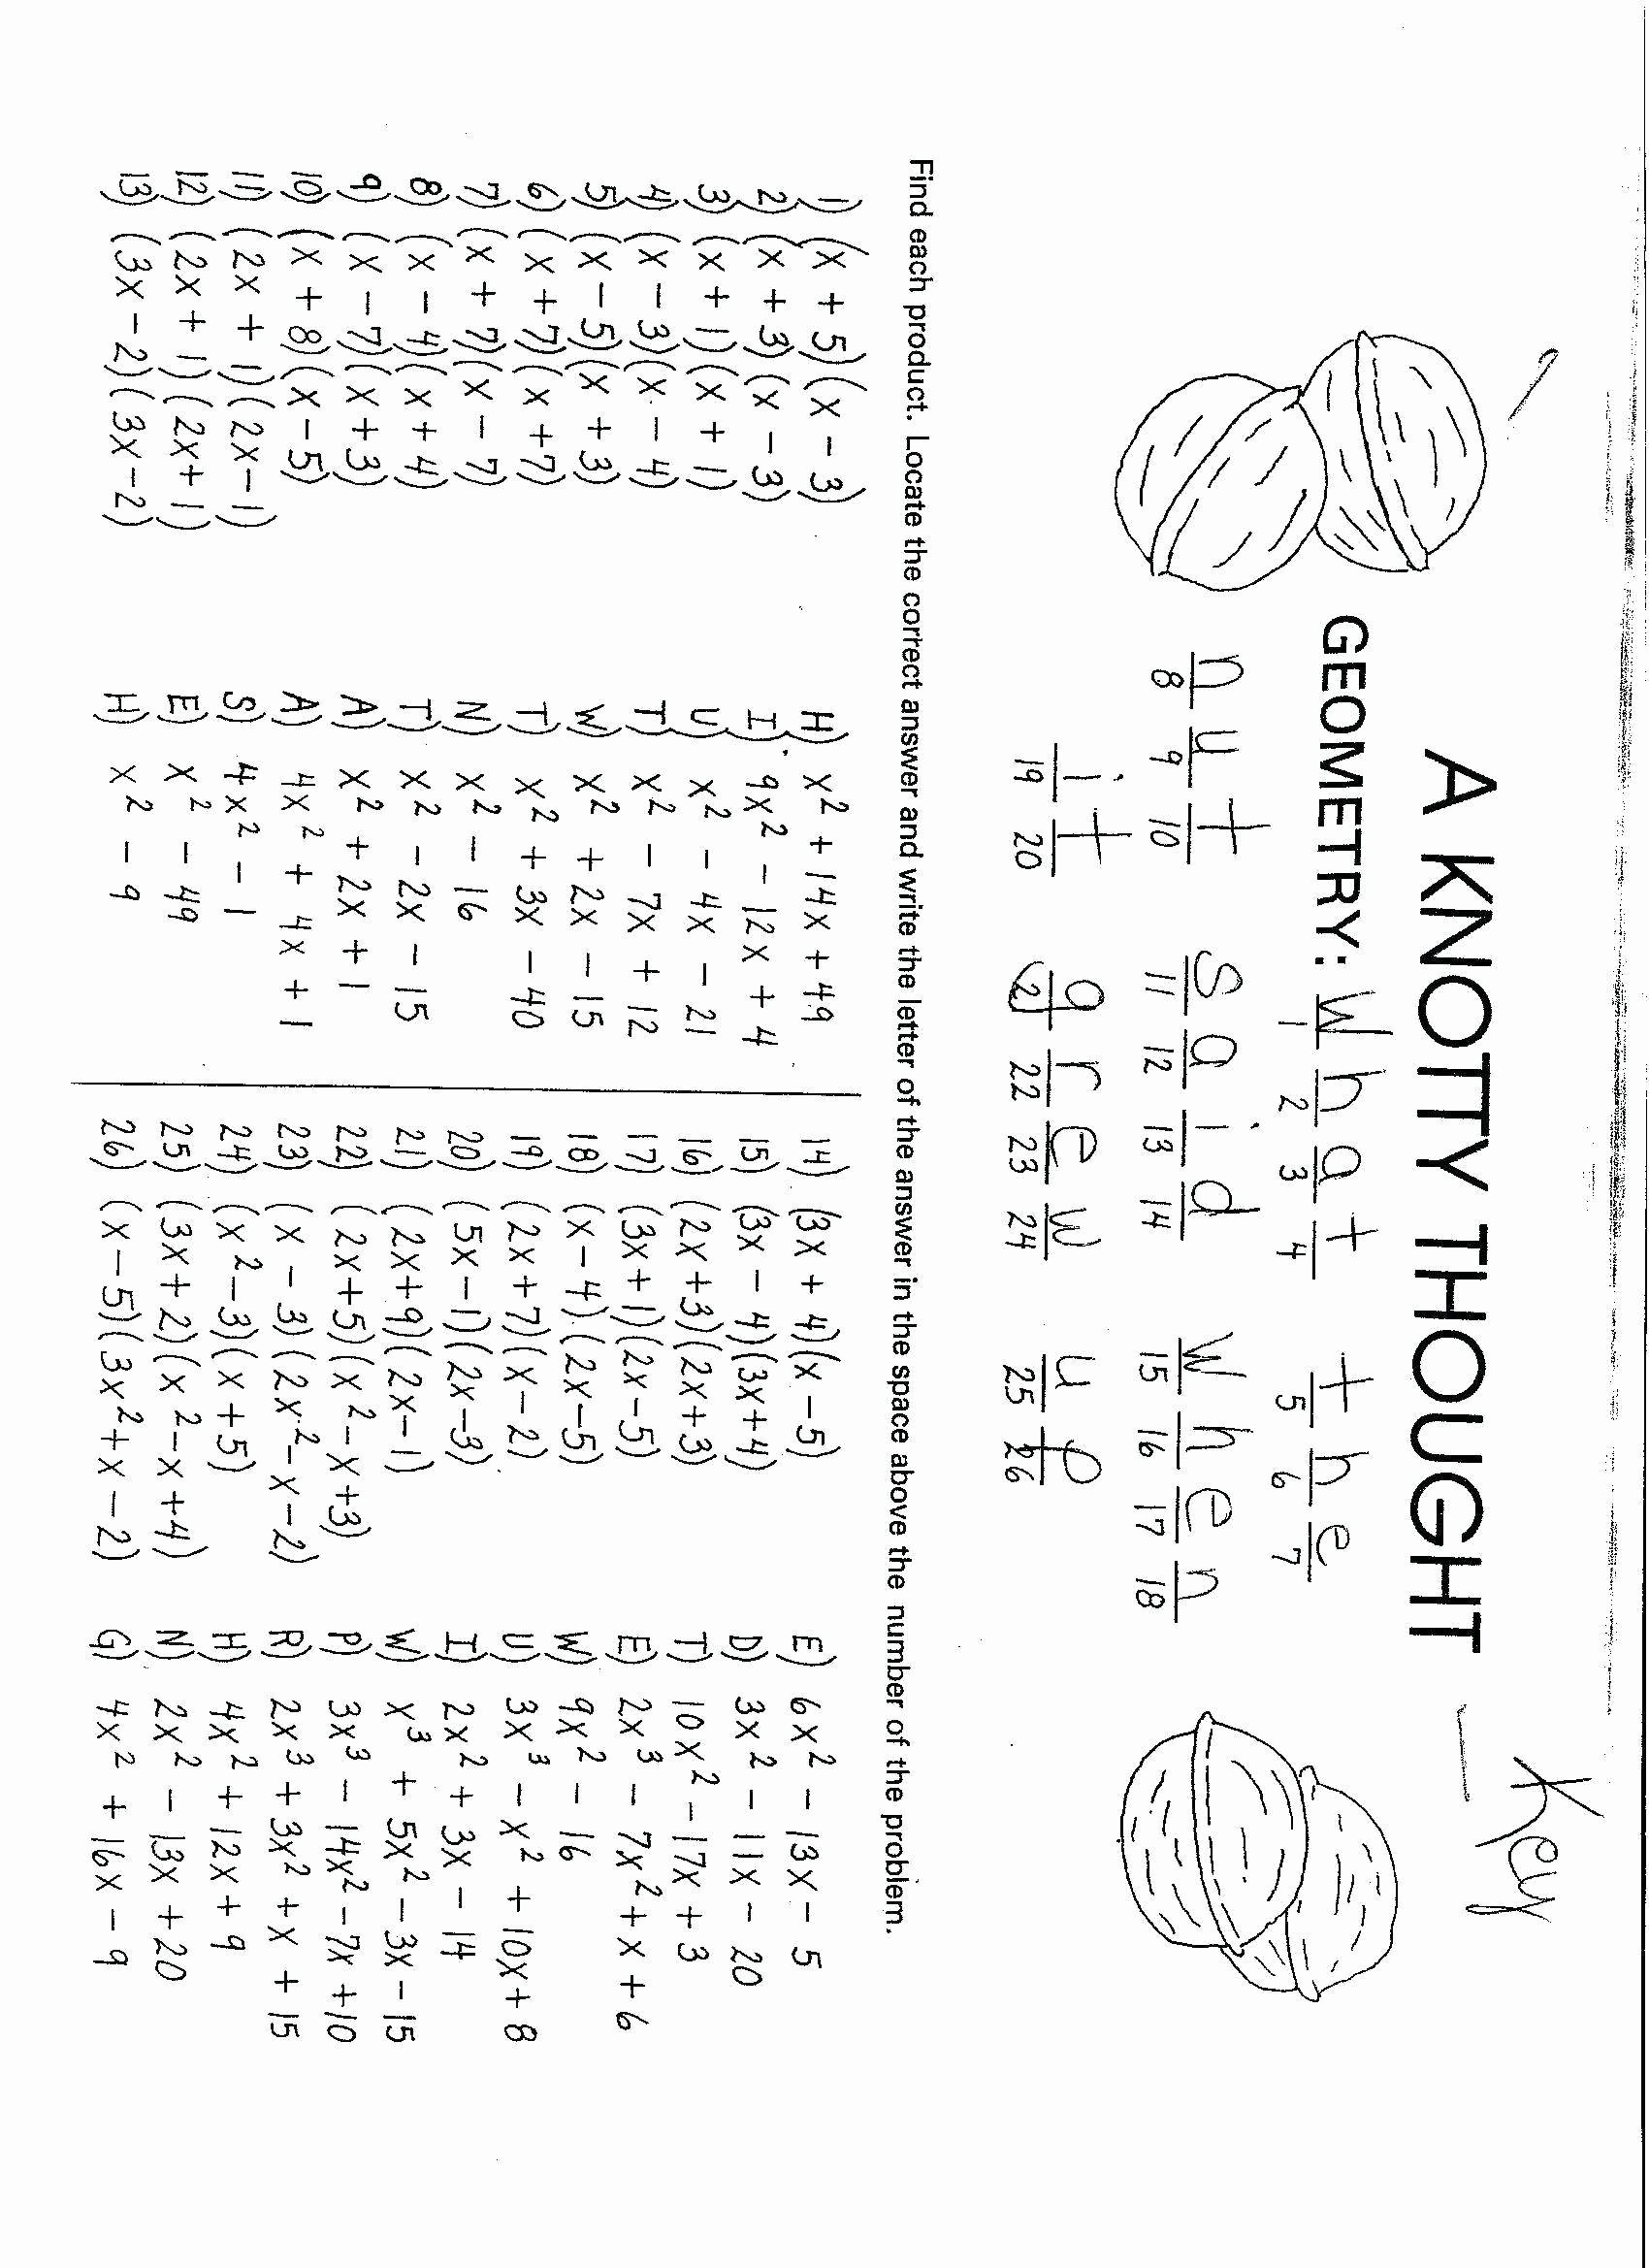 Operations with Polynomials Worksheet Unique Distributive Property Practice Worksheet Worksheet Idea